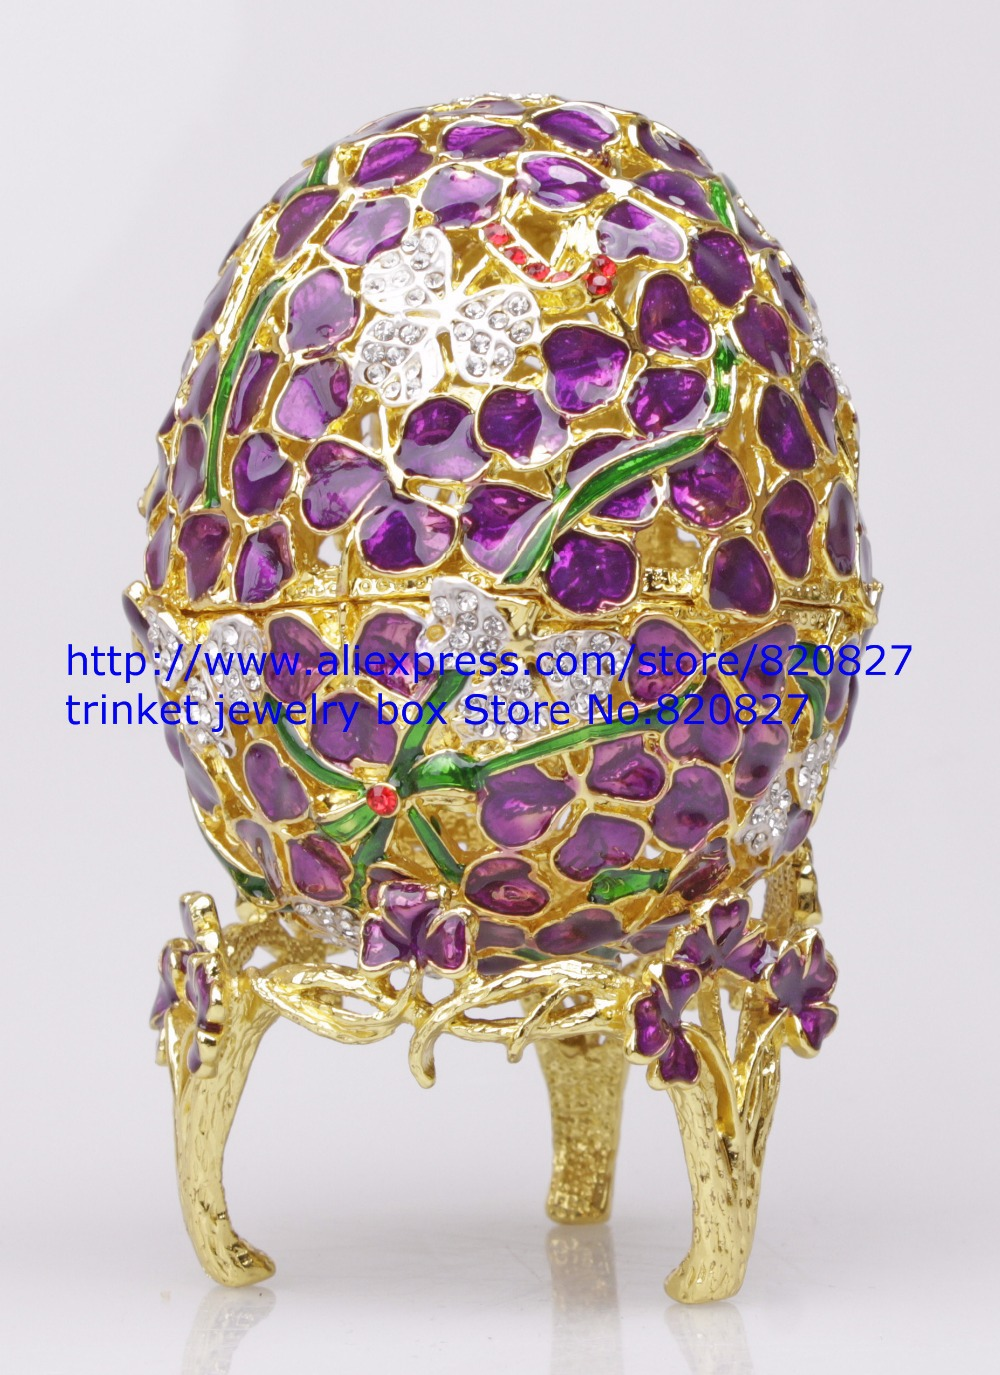 Faberge Egg Box Platinum Colored Czech Crystals, Silver with Stand Figurine Trinket Pill Jewelry Box Floral Flowers Trinket Egg faberge egg crystals jewellery jewelry trinket ring gift box egg trinket vintage decorations hinged footed egg shape trinket box